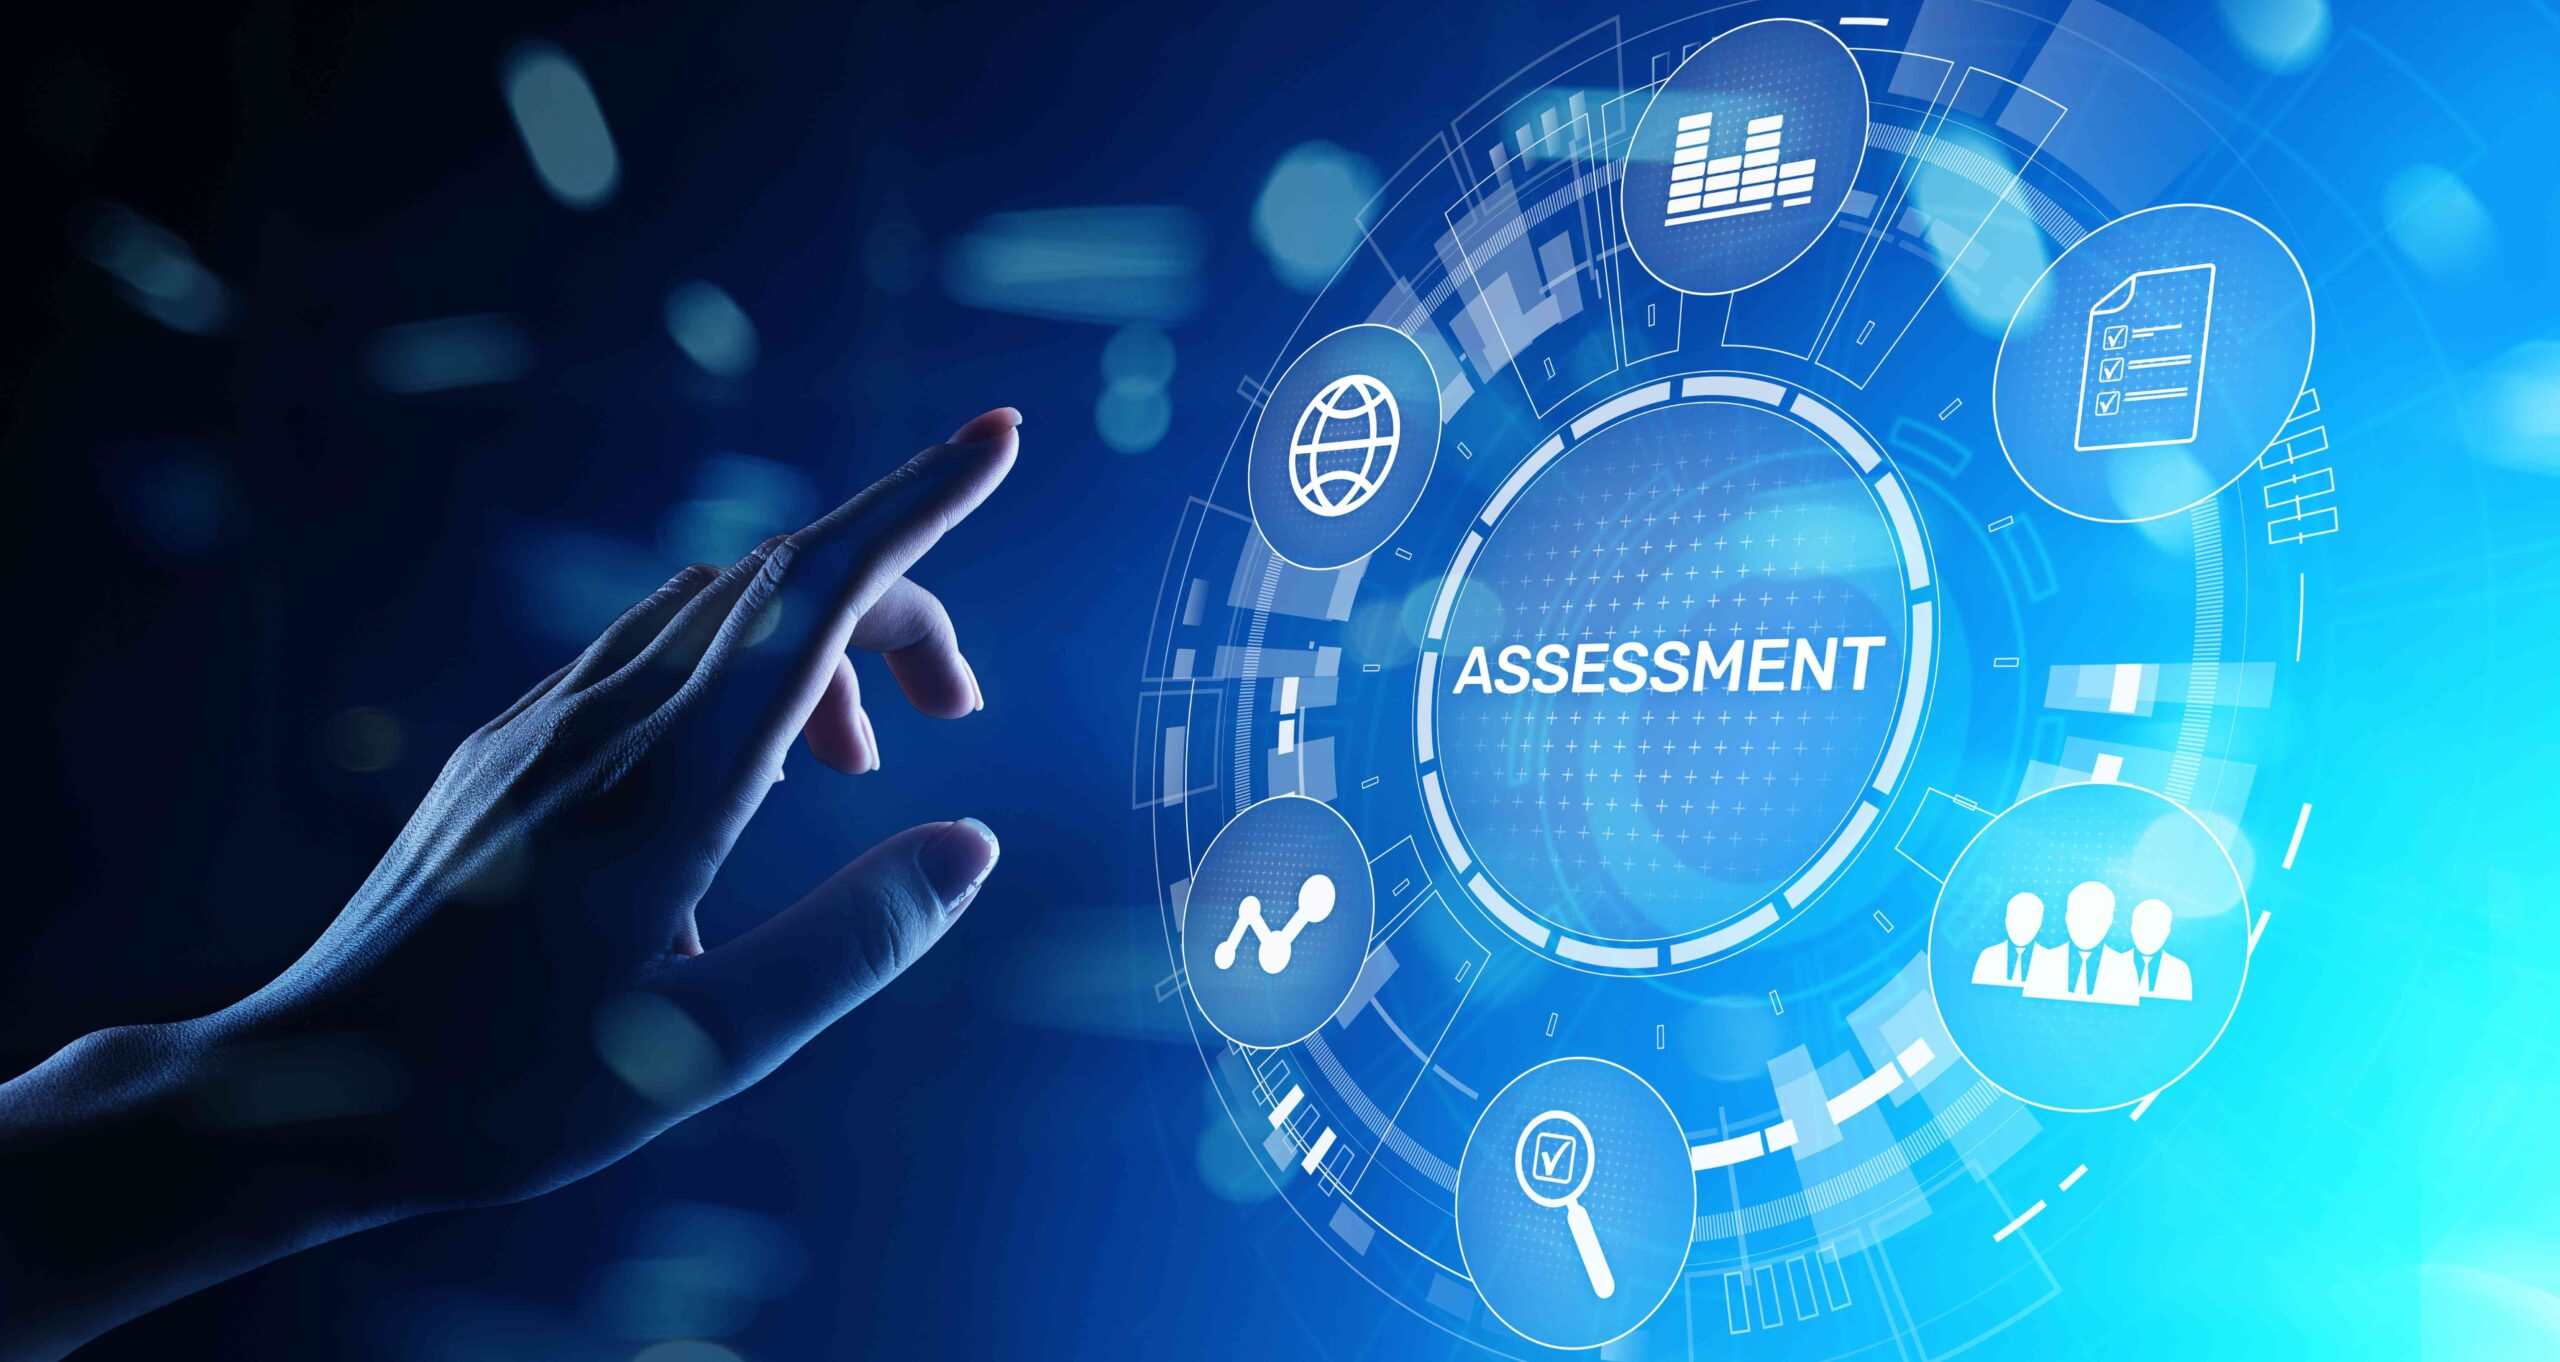 Preparing Exam Centres with the Shield of Social Distanced Assessments